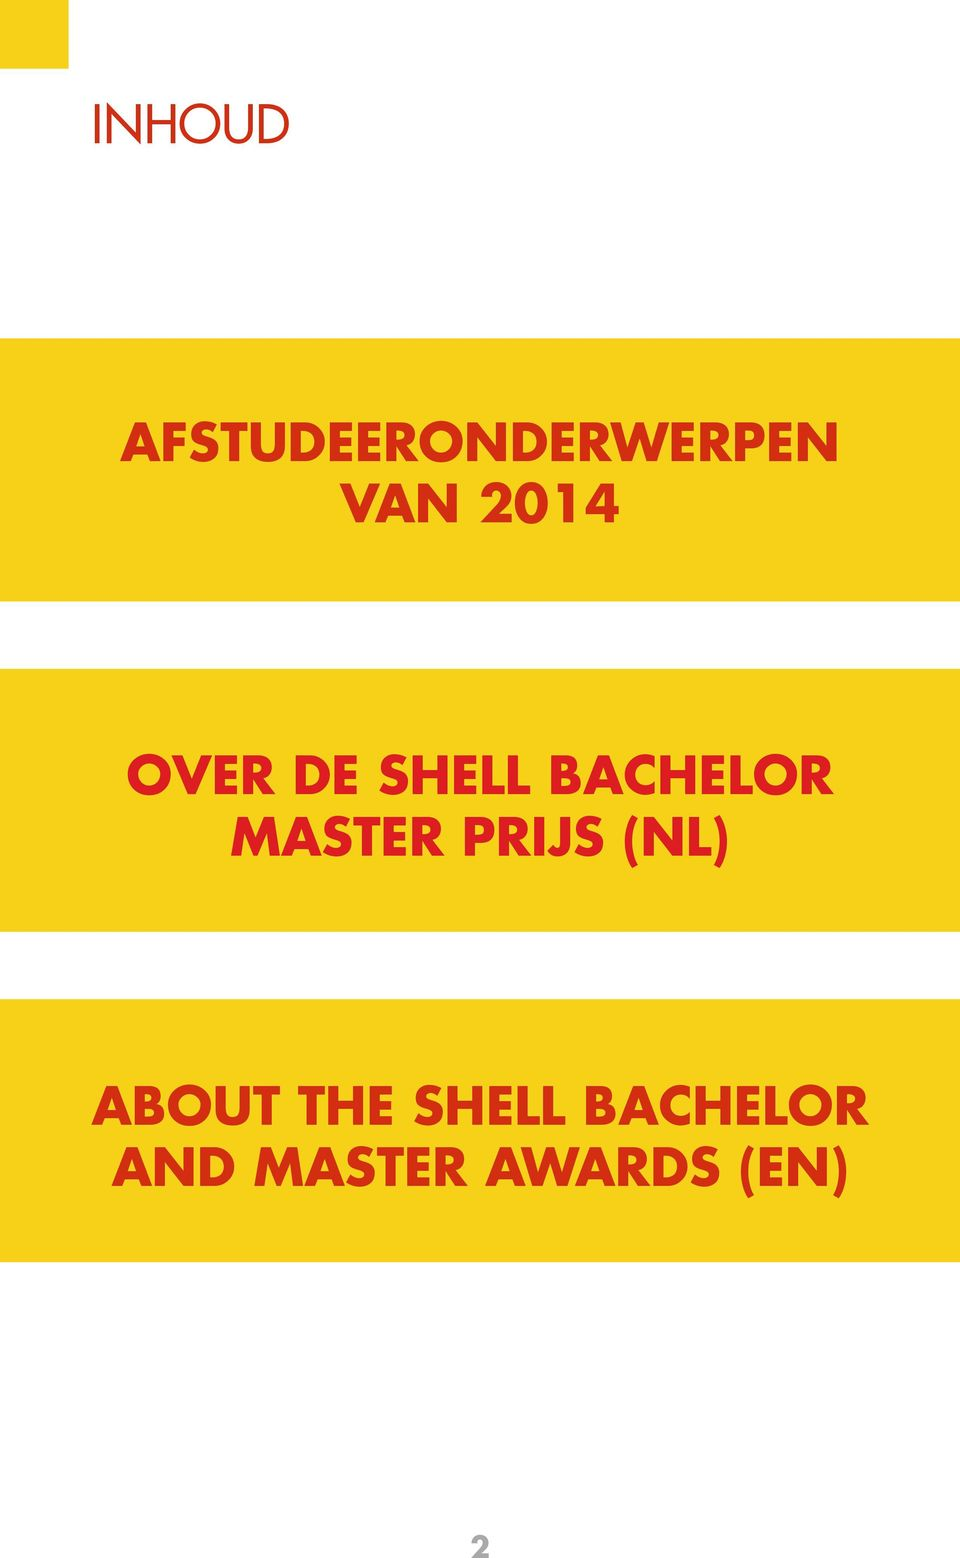 MASTER PRIJS (NL) ABOUT THE